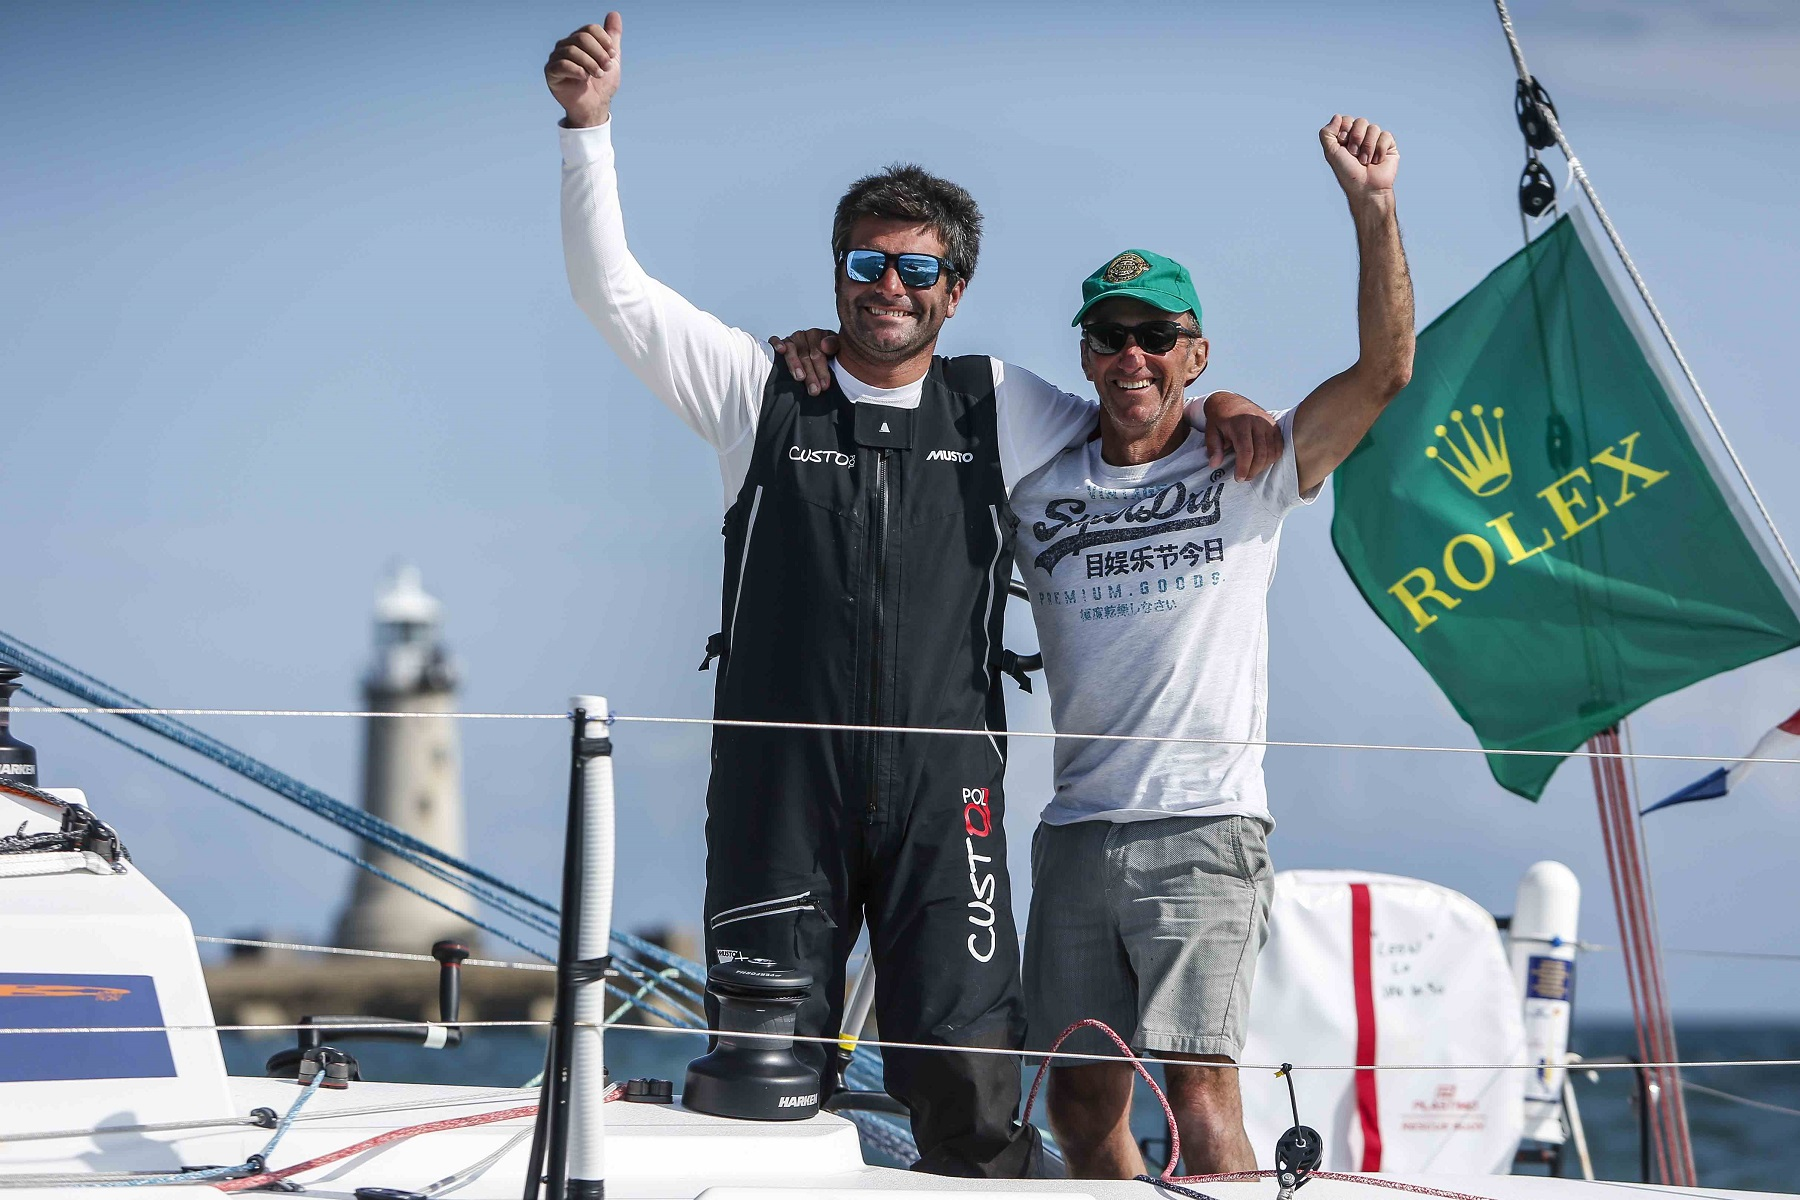 Defending their 2019 Rolex Fastnet Race IRC Two Handed title - Alexis Loison and Jean Pierre Kelbert on JPK 10.30 Léon  © Paul Wyeth/pwpictures.com